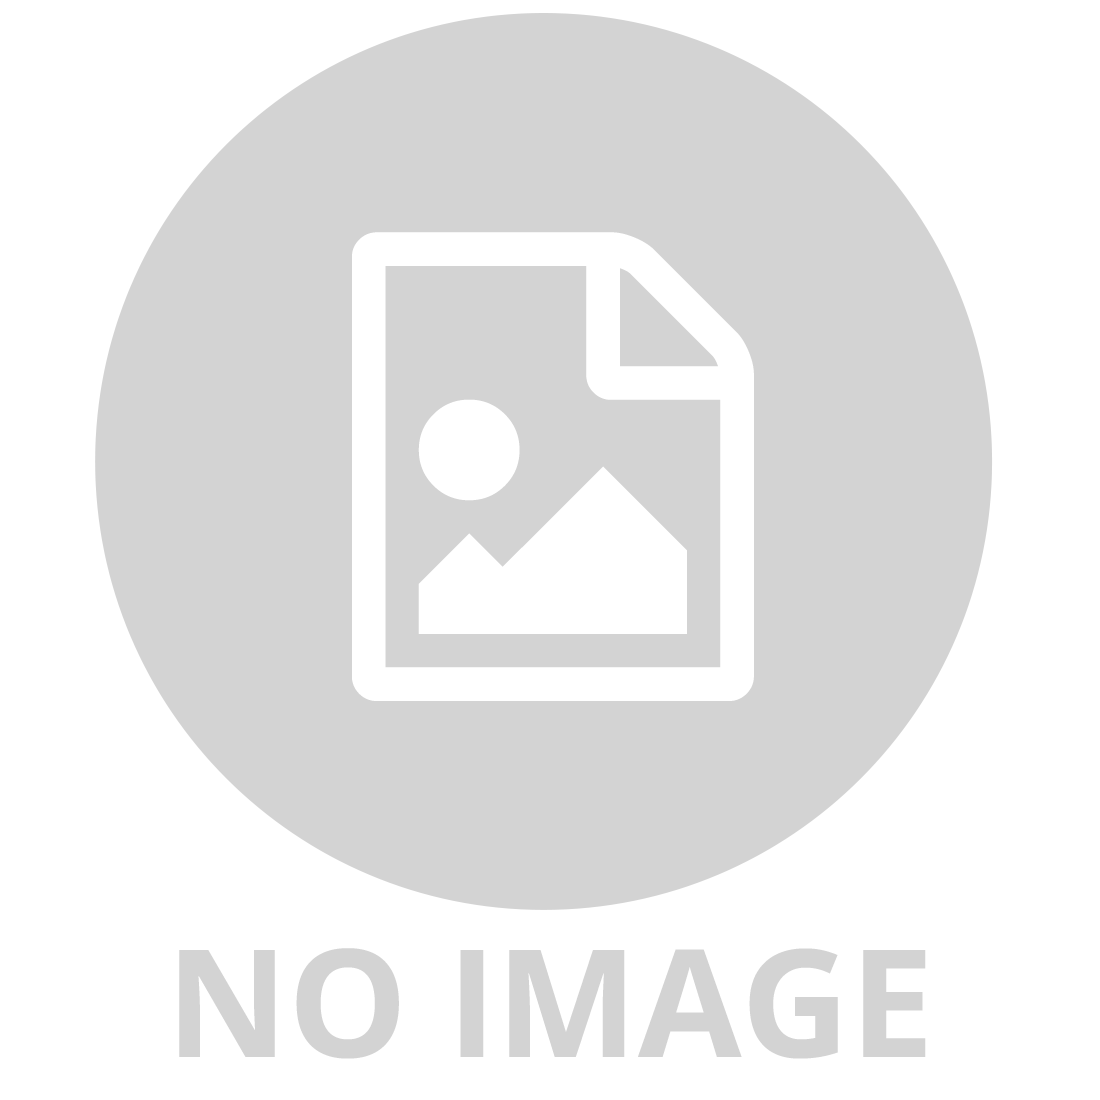 CRAYOLA ULTRA CLEAN WASHABLE LARGE CRAYONS